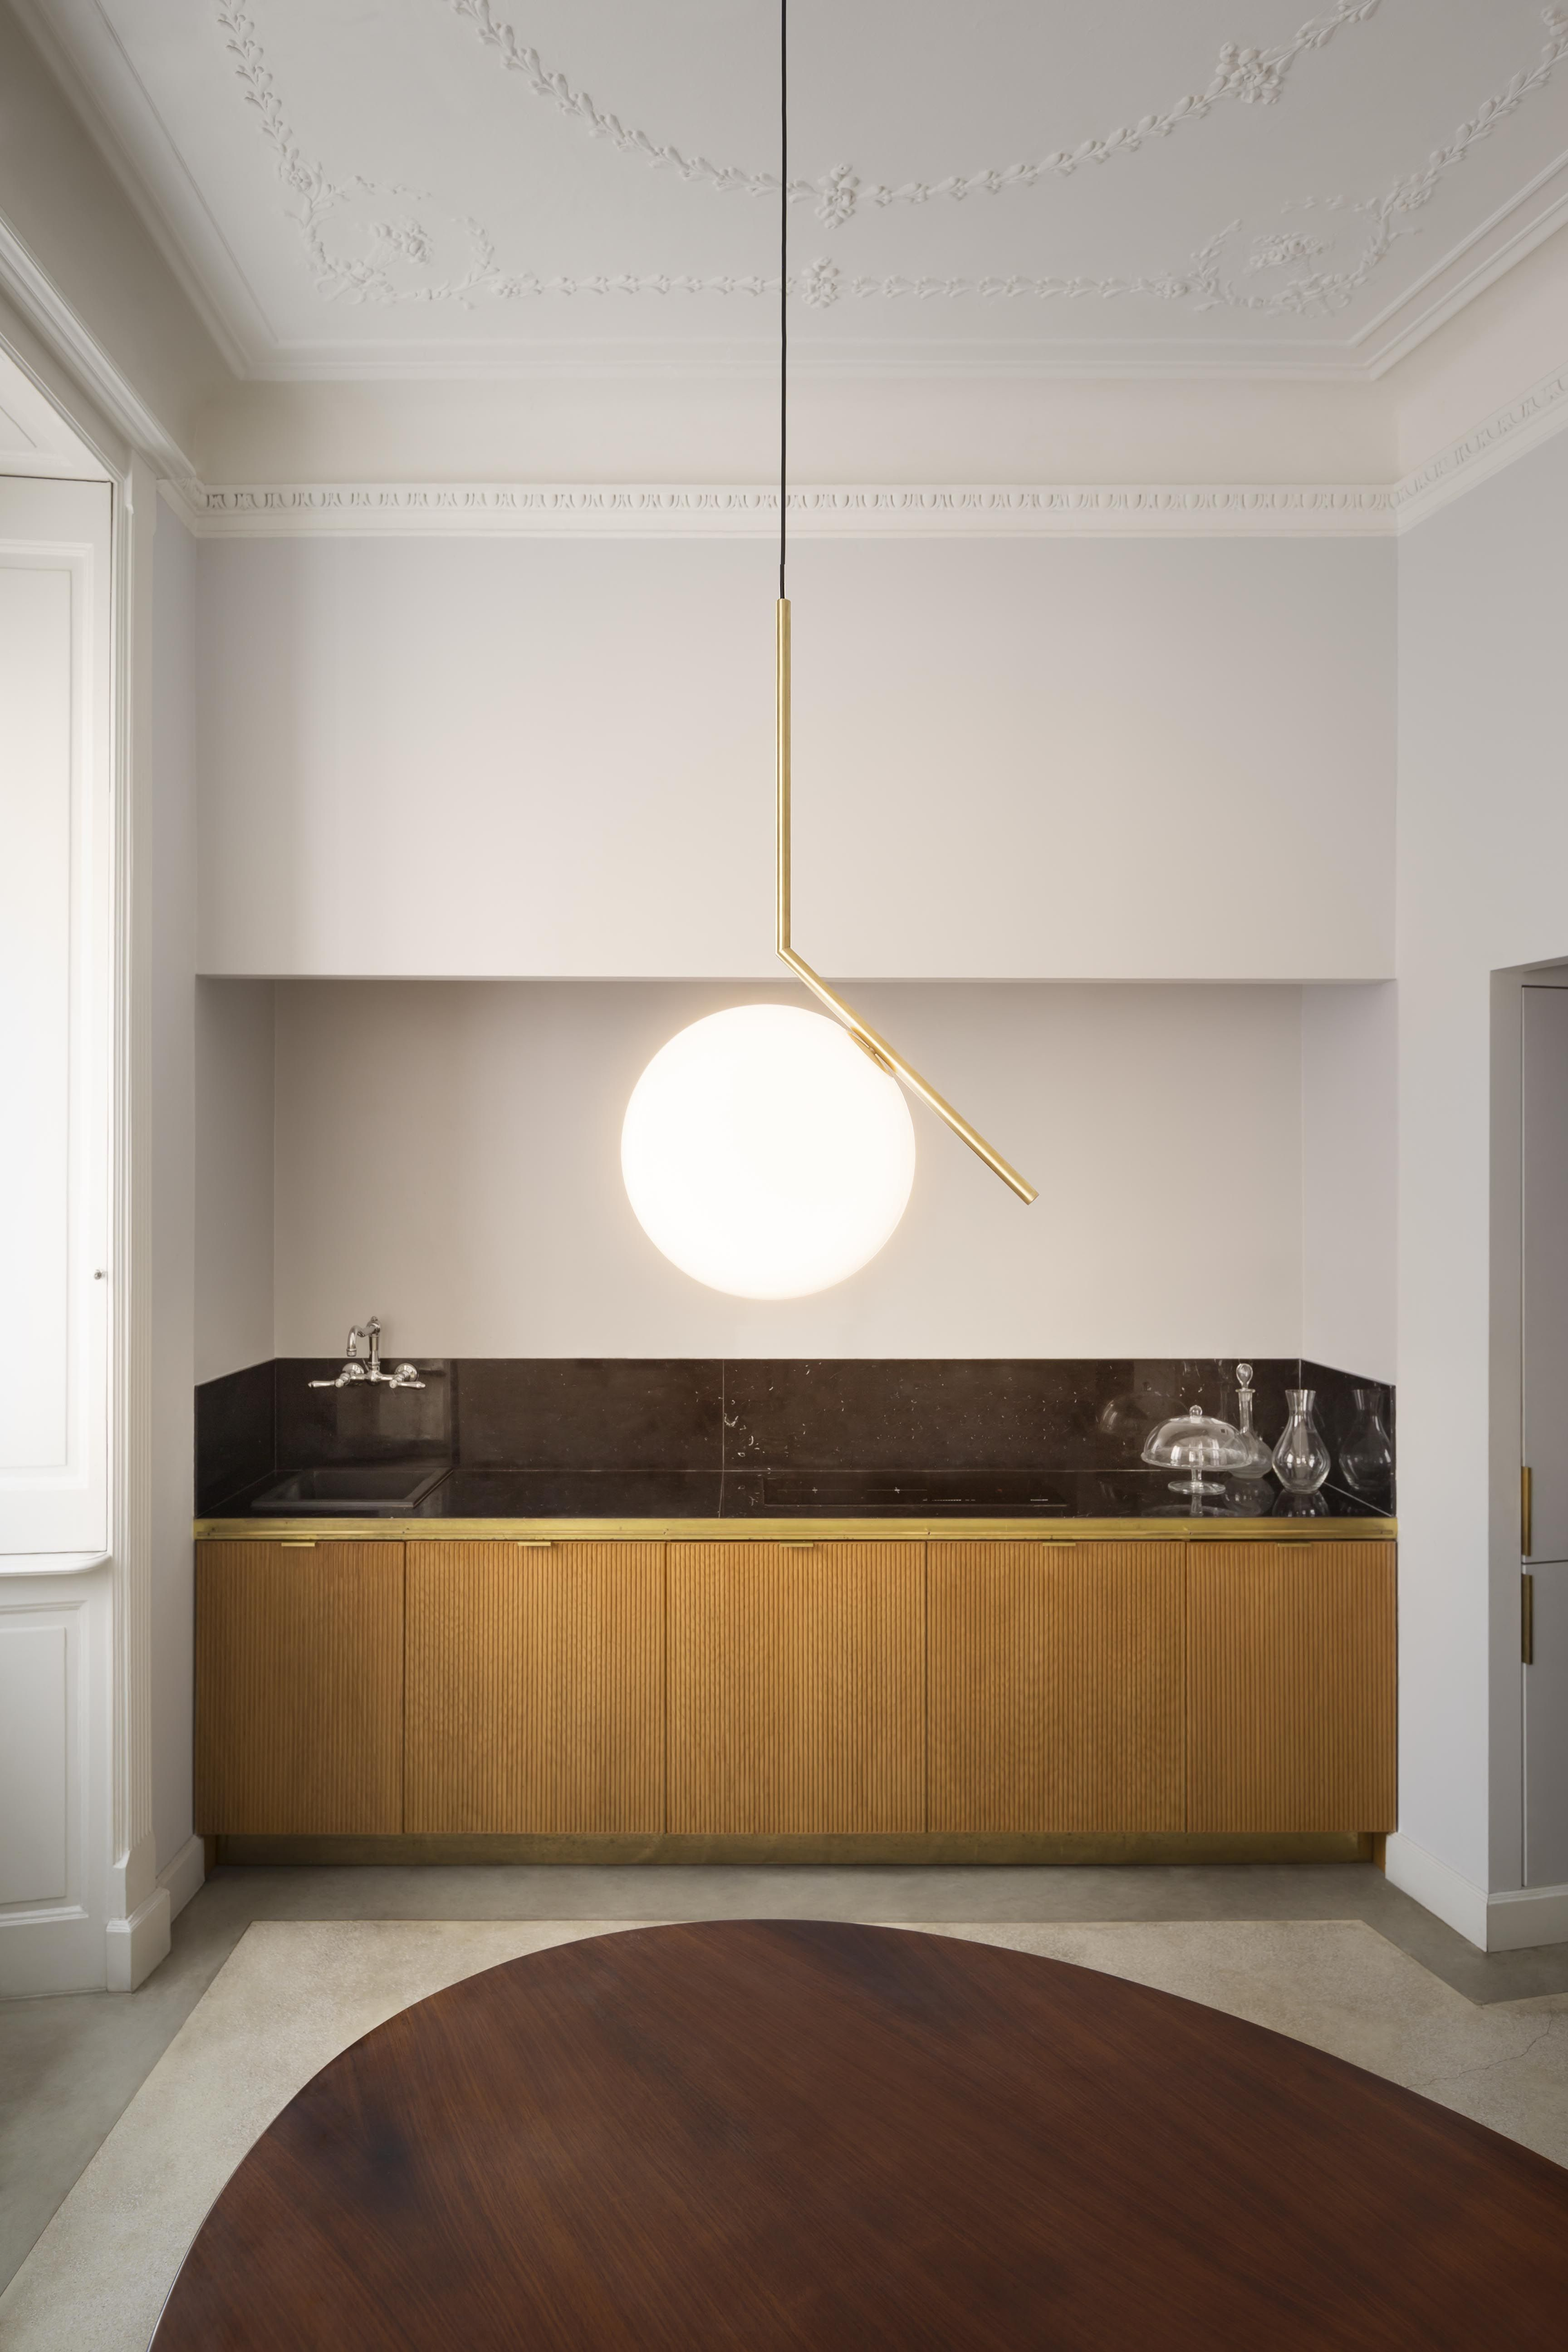 Ic light s2 brass designed by michael anastassiades for flos lighting interior pinterest - Ic lights flos ...